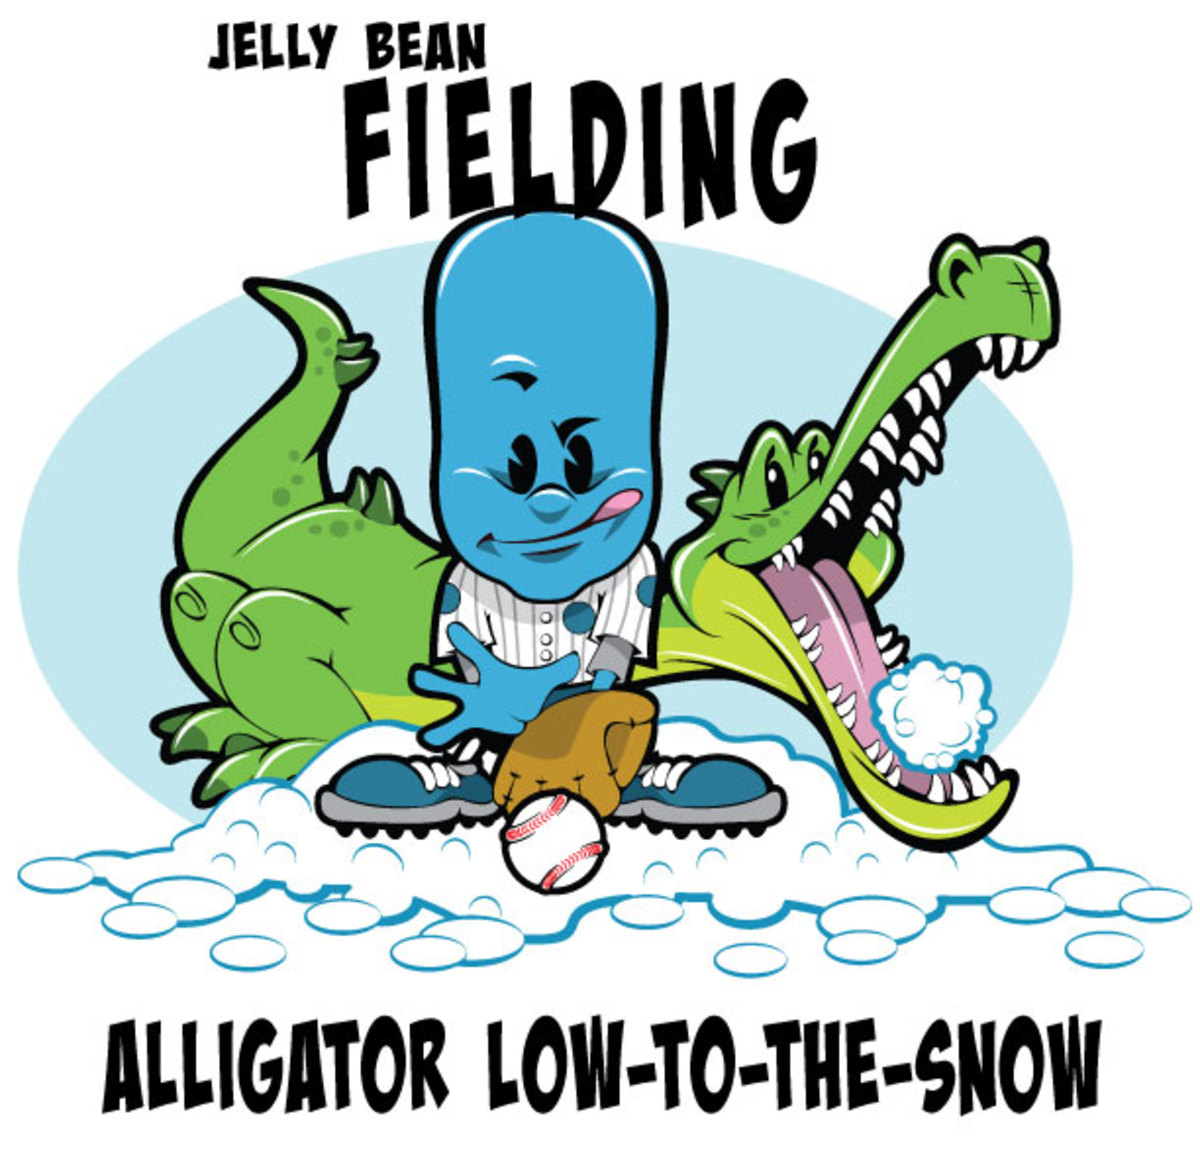 Jelly Bean and alligator playing baseball in the snow